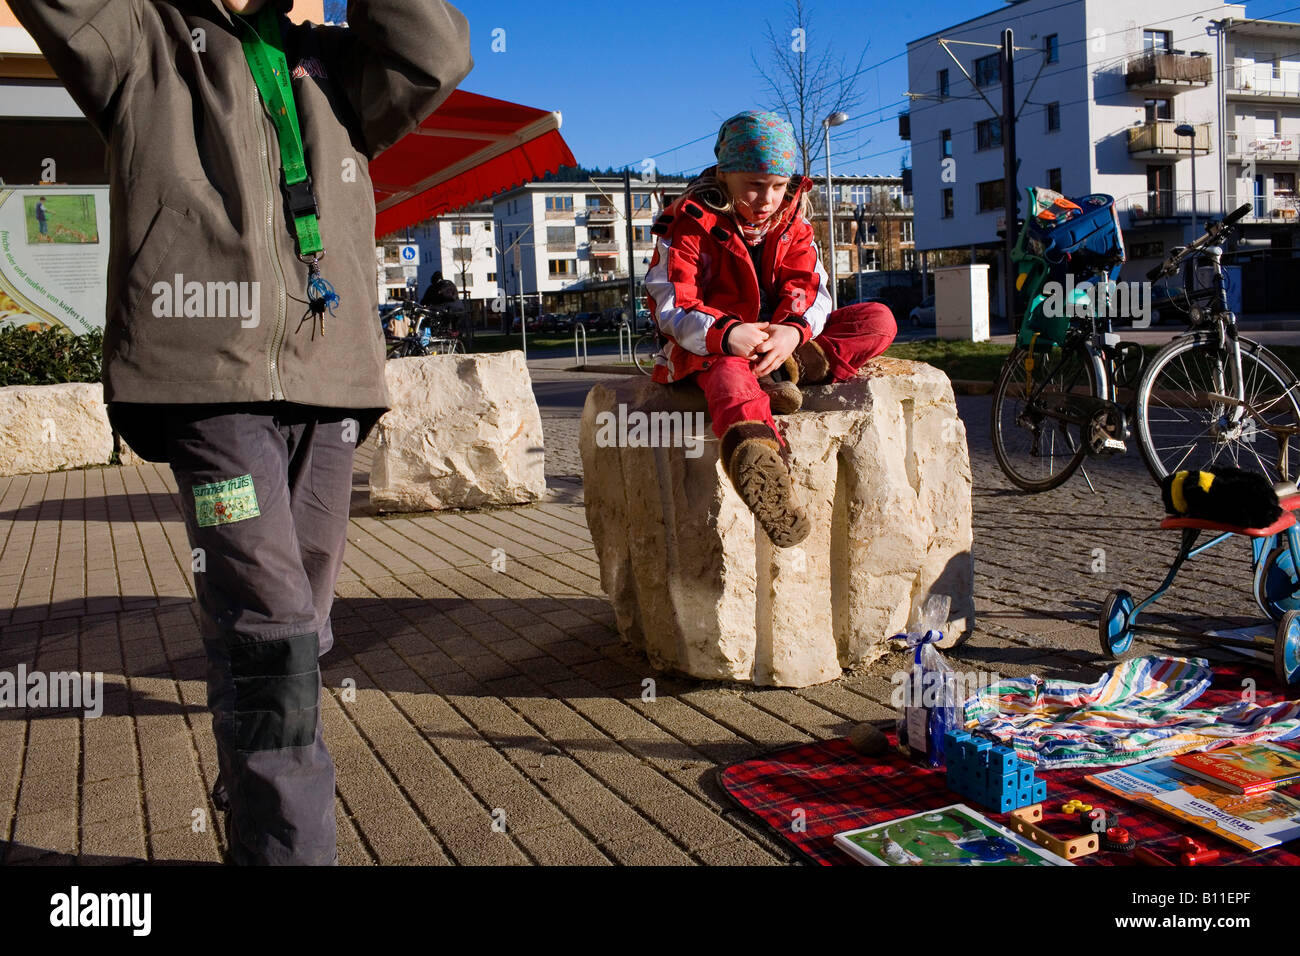 A jumble sale provides a focus on the street of the eco town Vauban - Stock Image